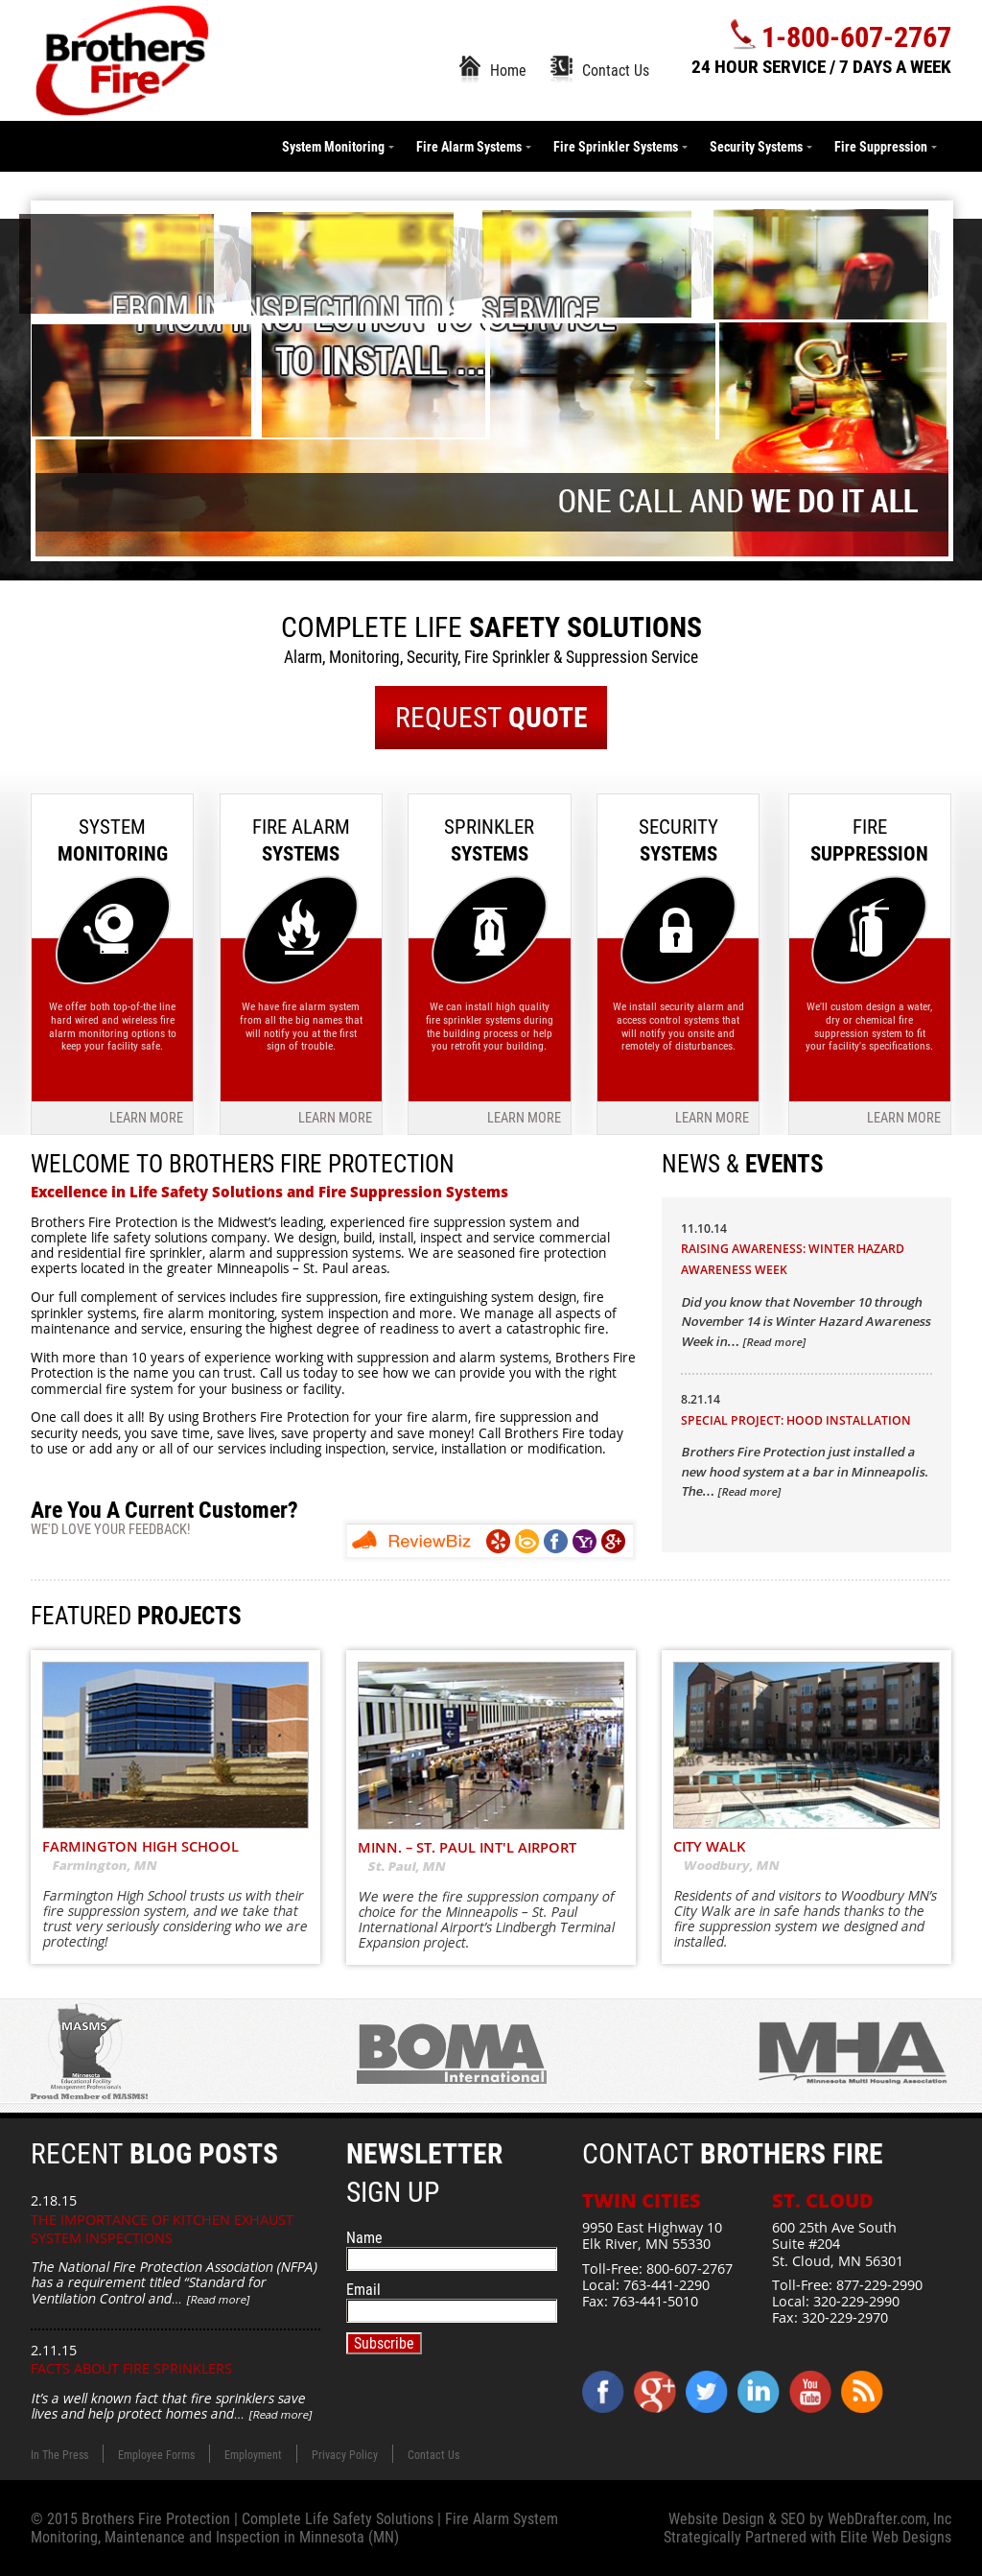 Brothers Fire Protection Competitors, Revenue and Employees - Owler ...